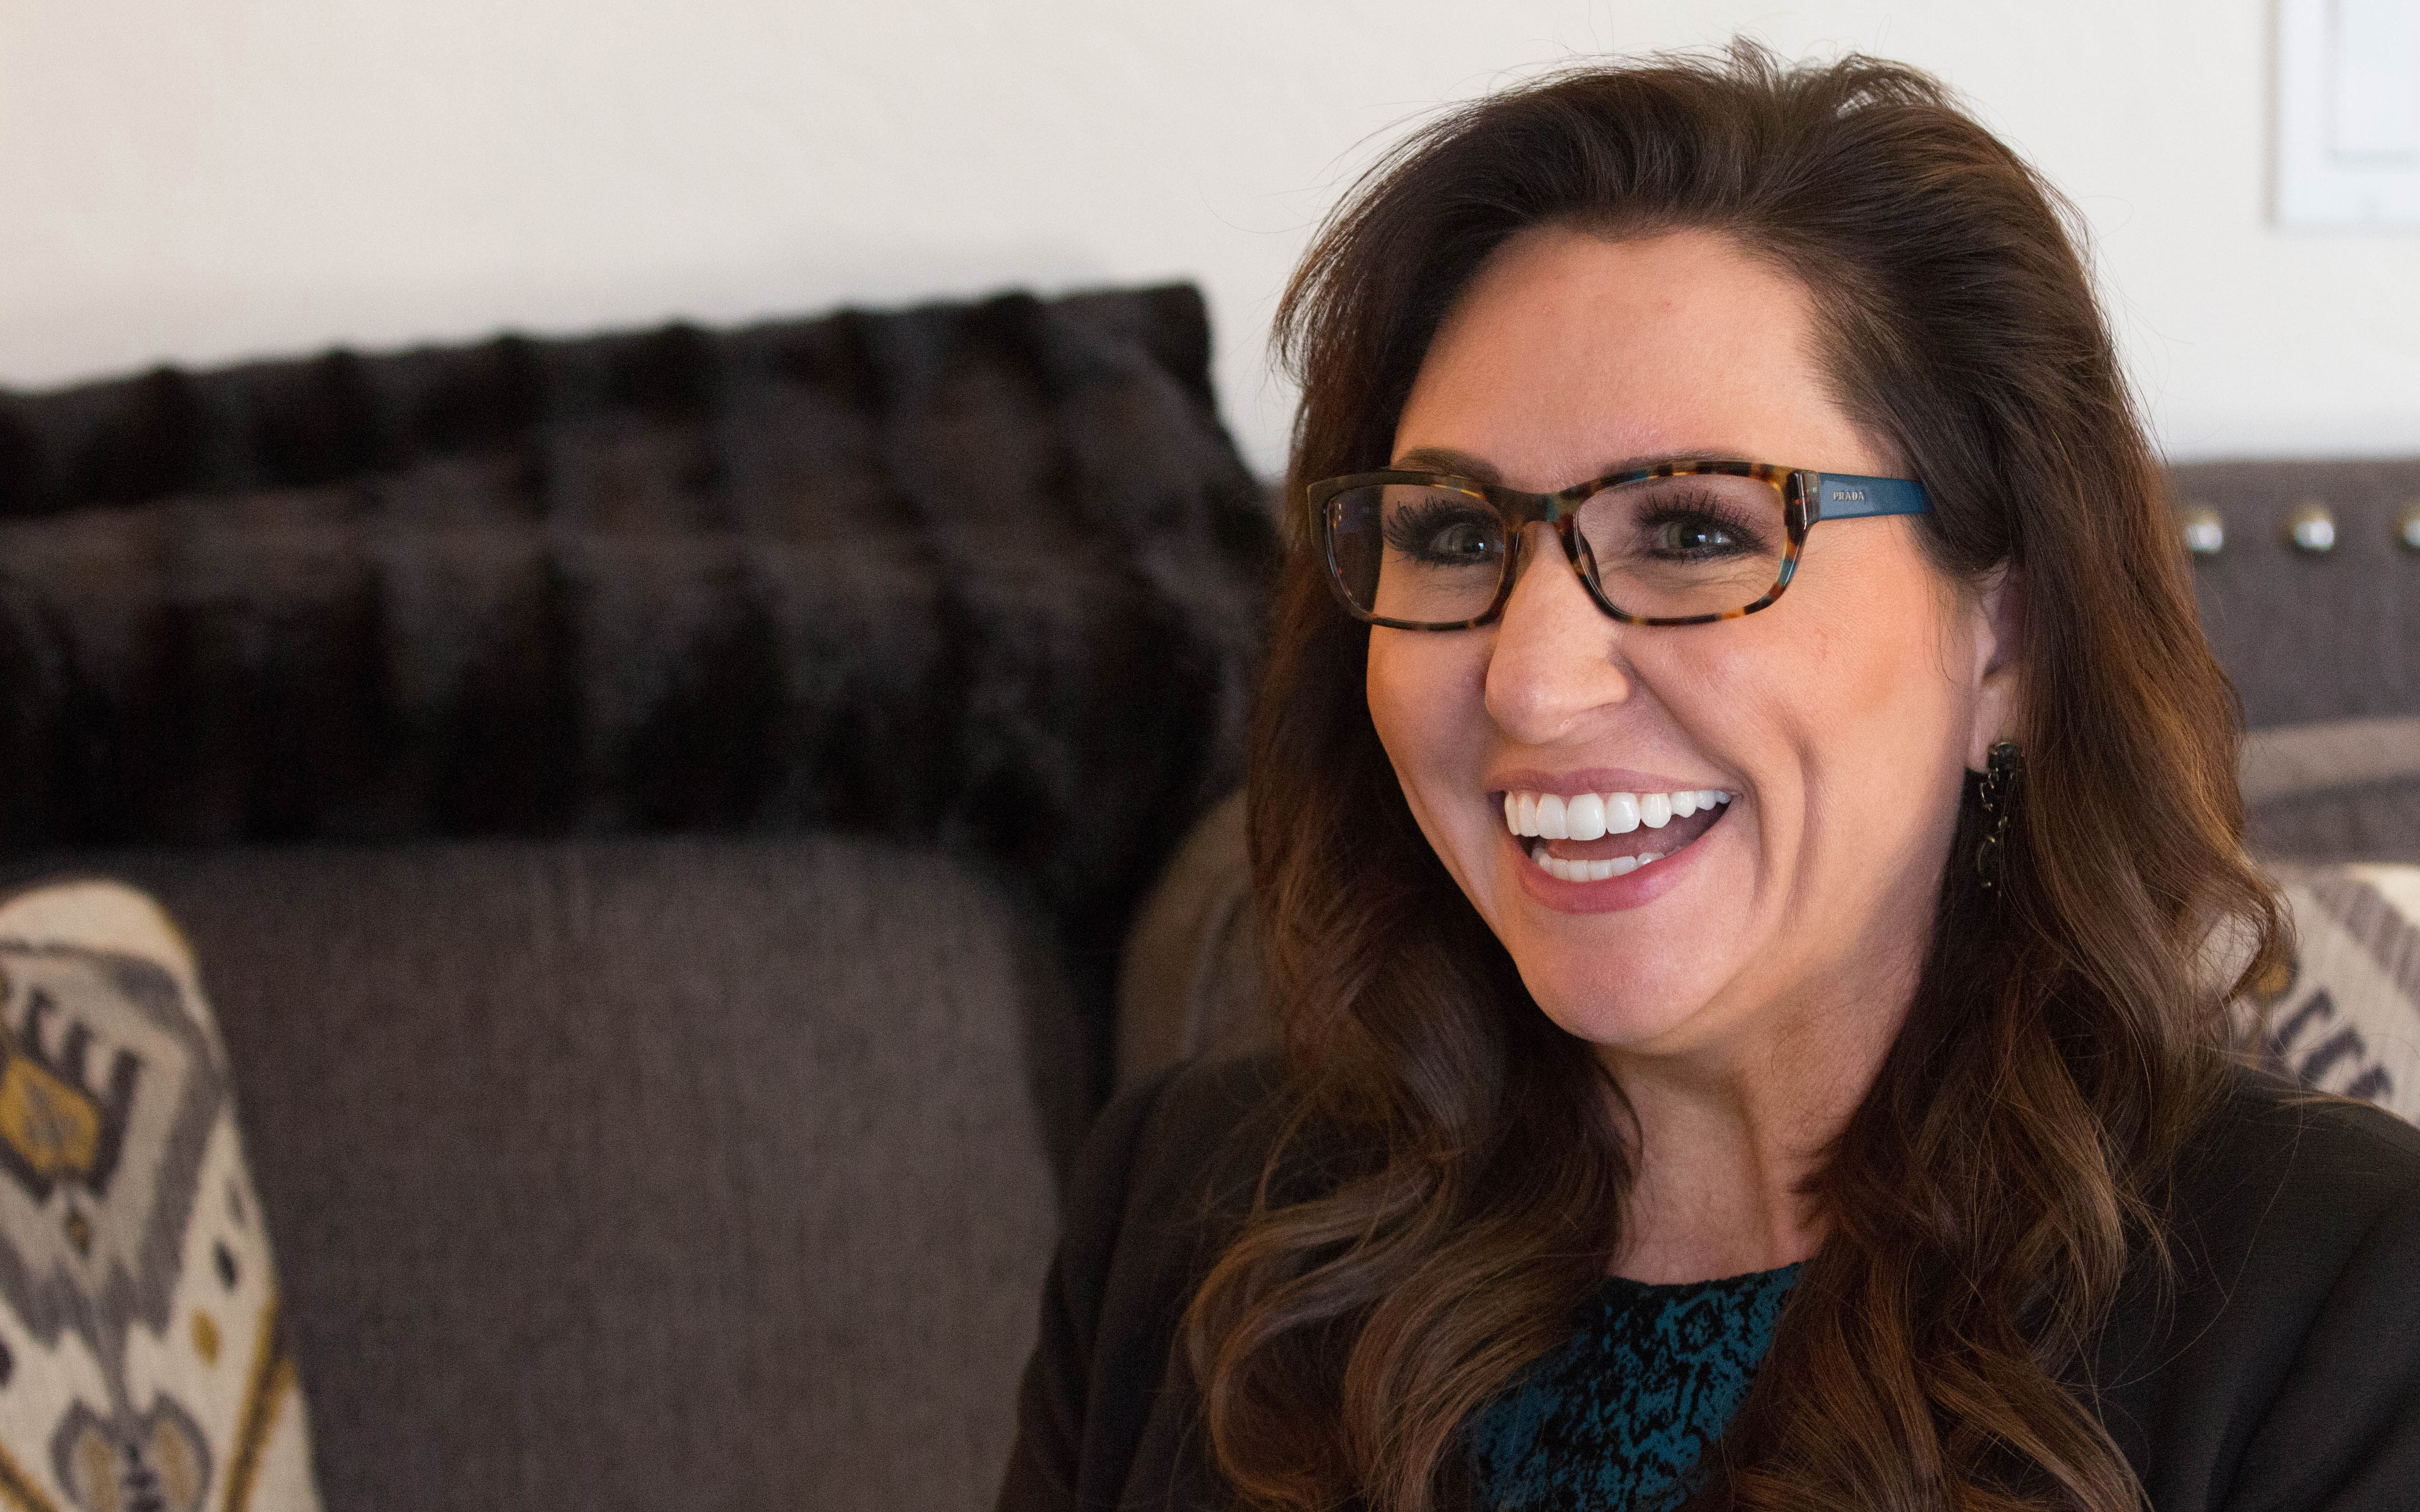 Dr. Amy Serin, neuropsychologist and creator of Buzzies, said the product inhibits stress responses and enhances memory recognition. (Photo by Megan Bridgeman/Cronkite News)